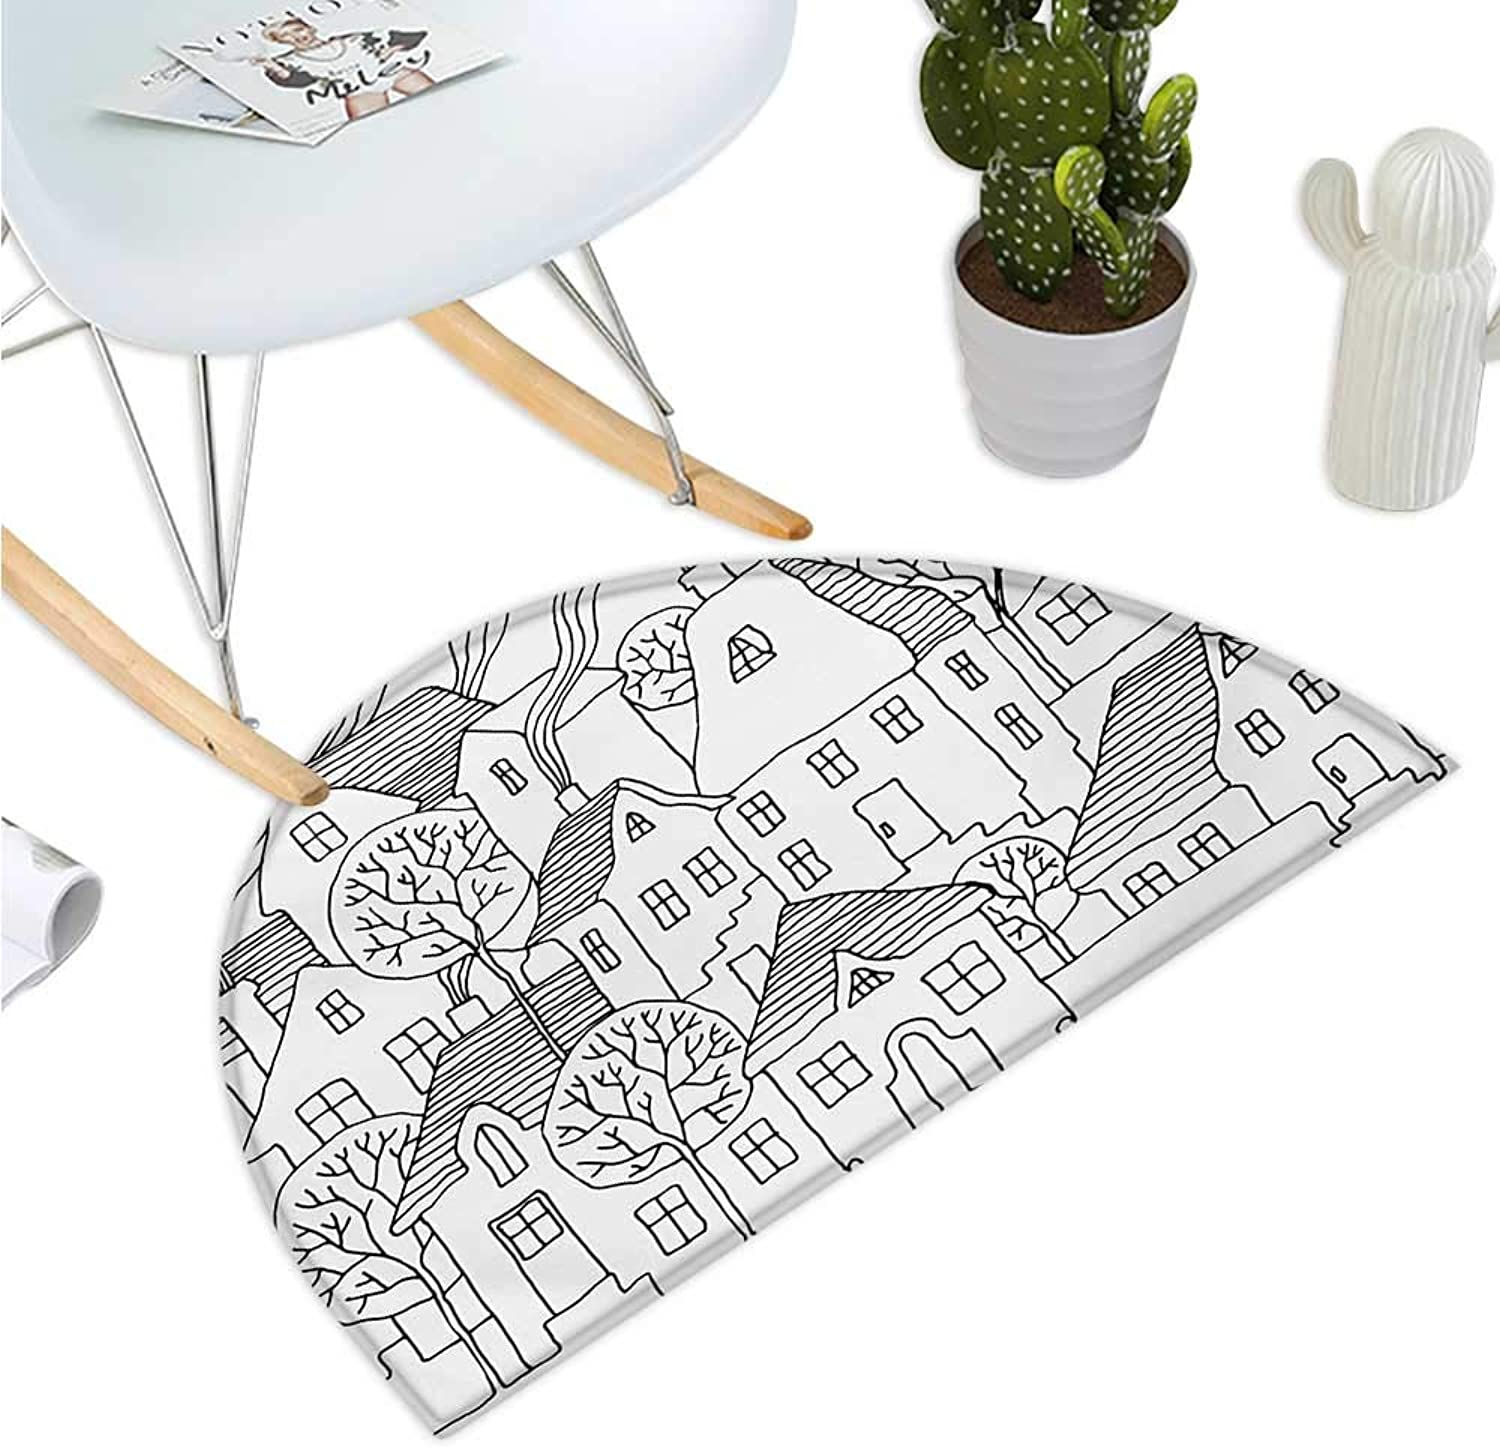 Sketchy Semicircular Cushion Cartoon Design House Village with Stripes Hand Drawn Images Artwork Print Entry Door Mat H 35.4  xD 53.1  Black and White